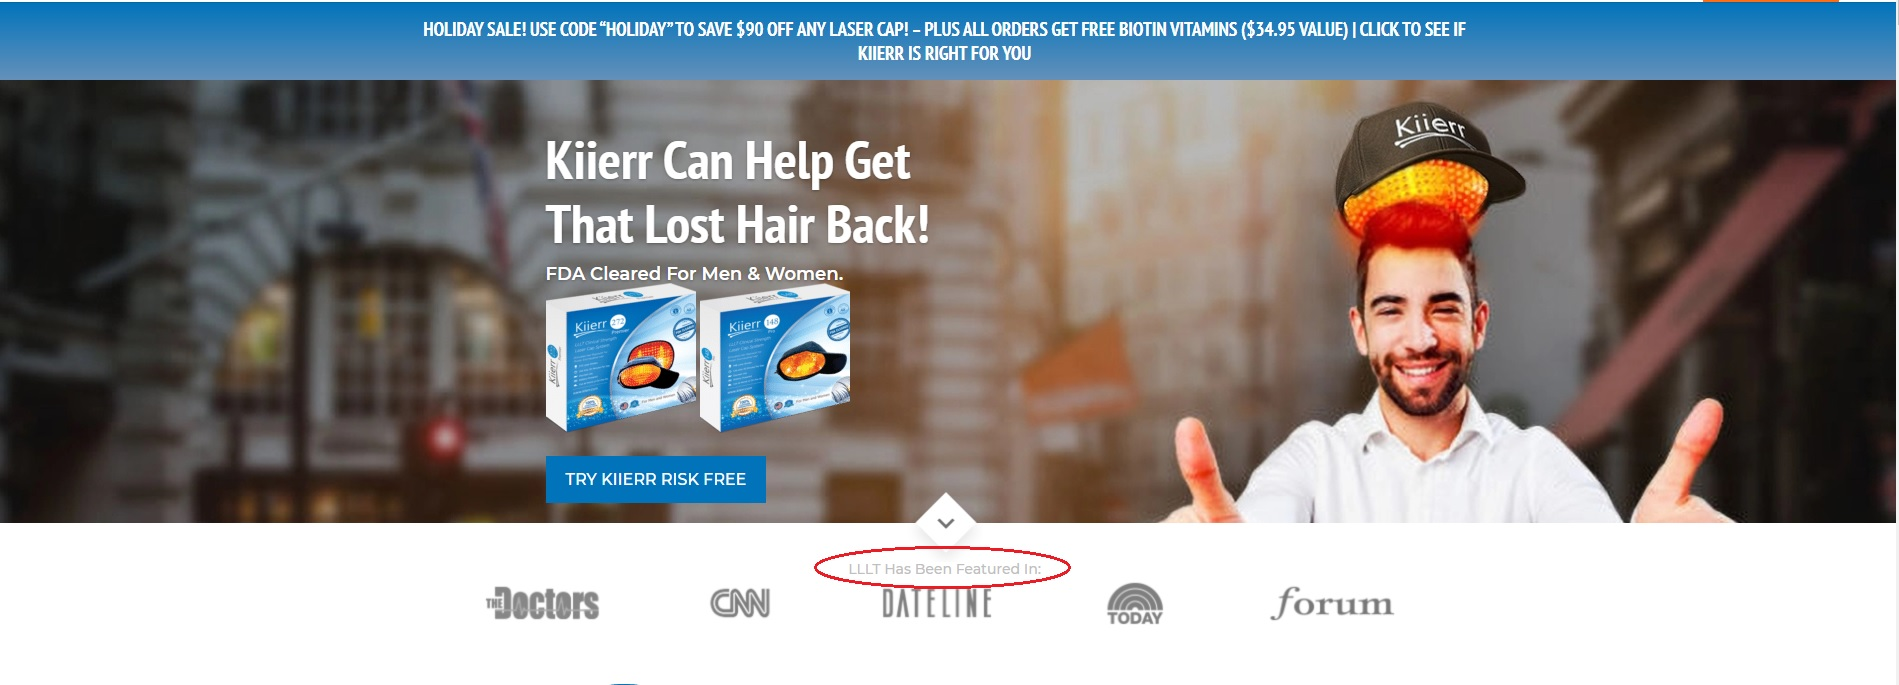 Home Page for Kiierr Laser Caps for Hair Loss